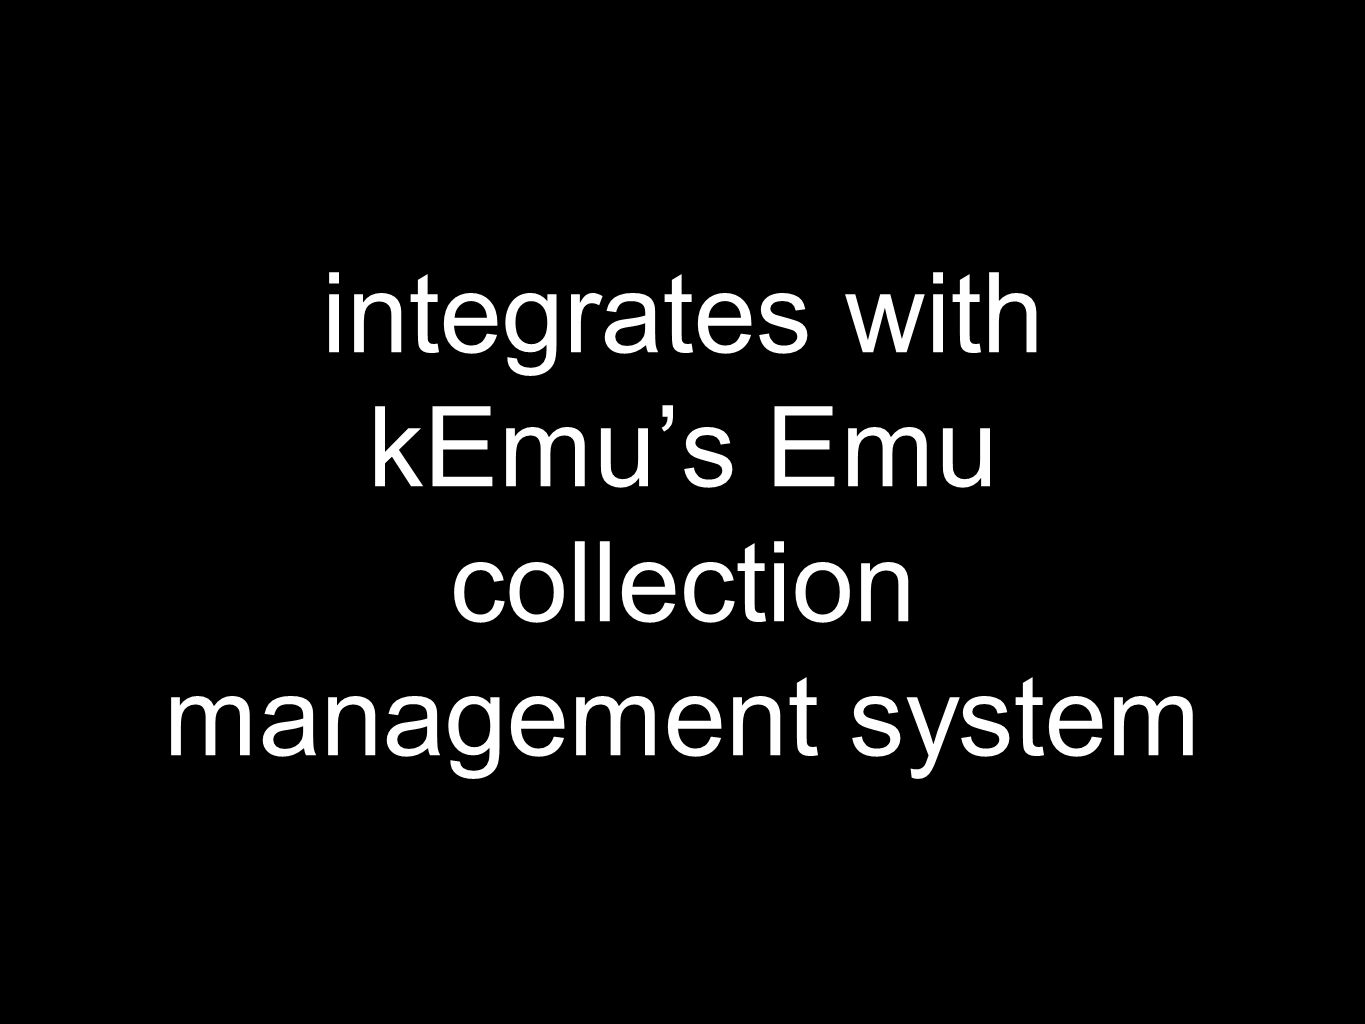 integrates with kEmu's Emu collection management system